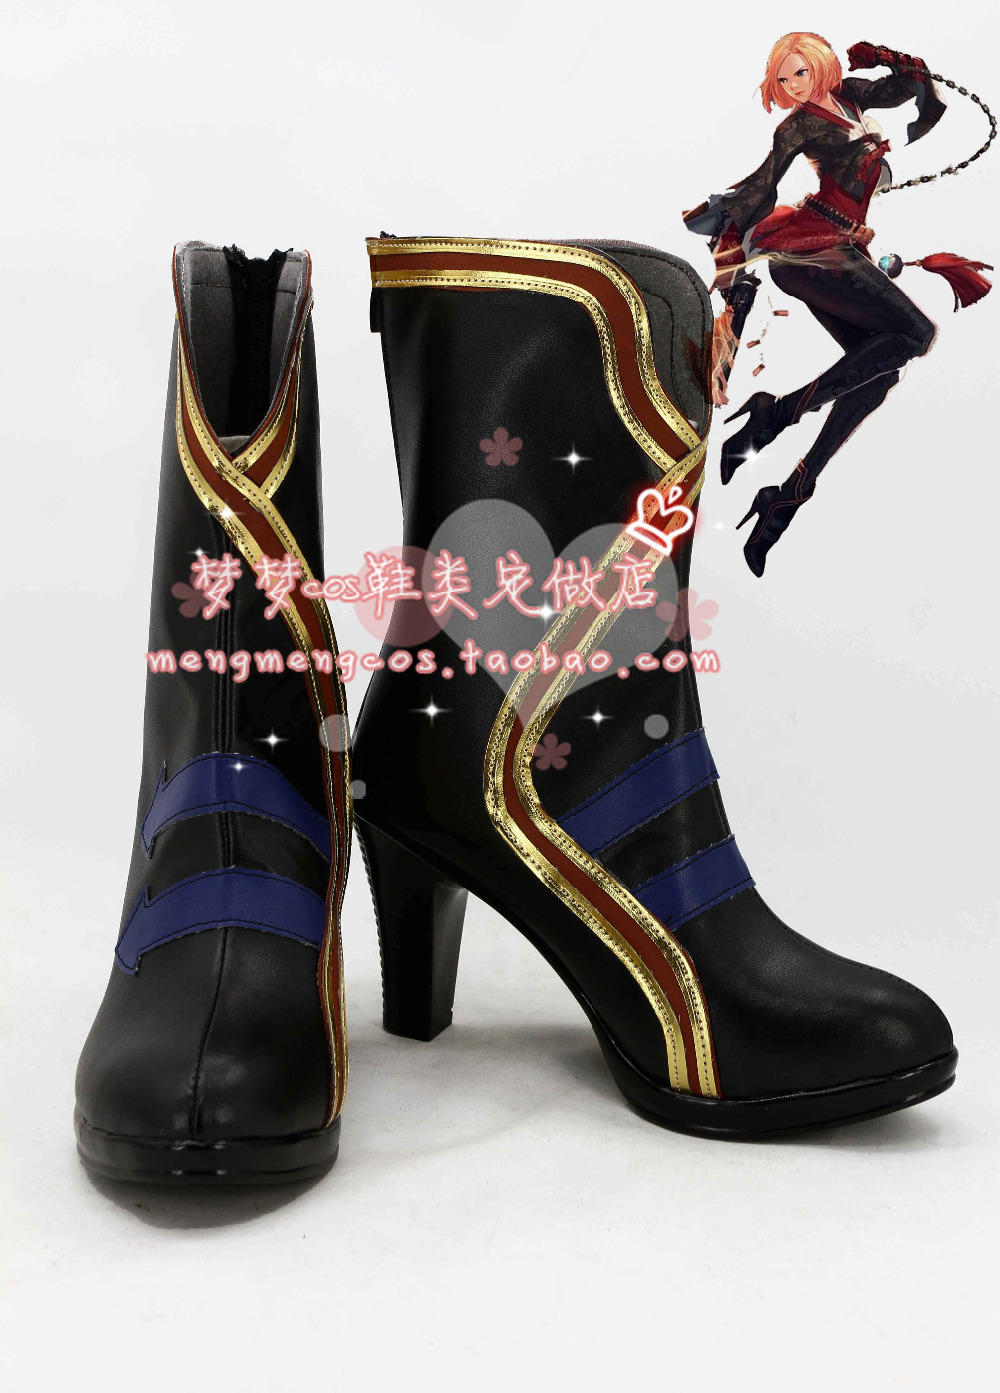 Rangers us Army Shoes Ranger Cosplay Boots Shoes